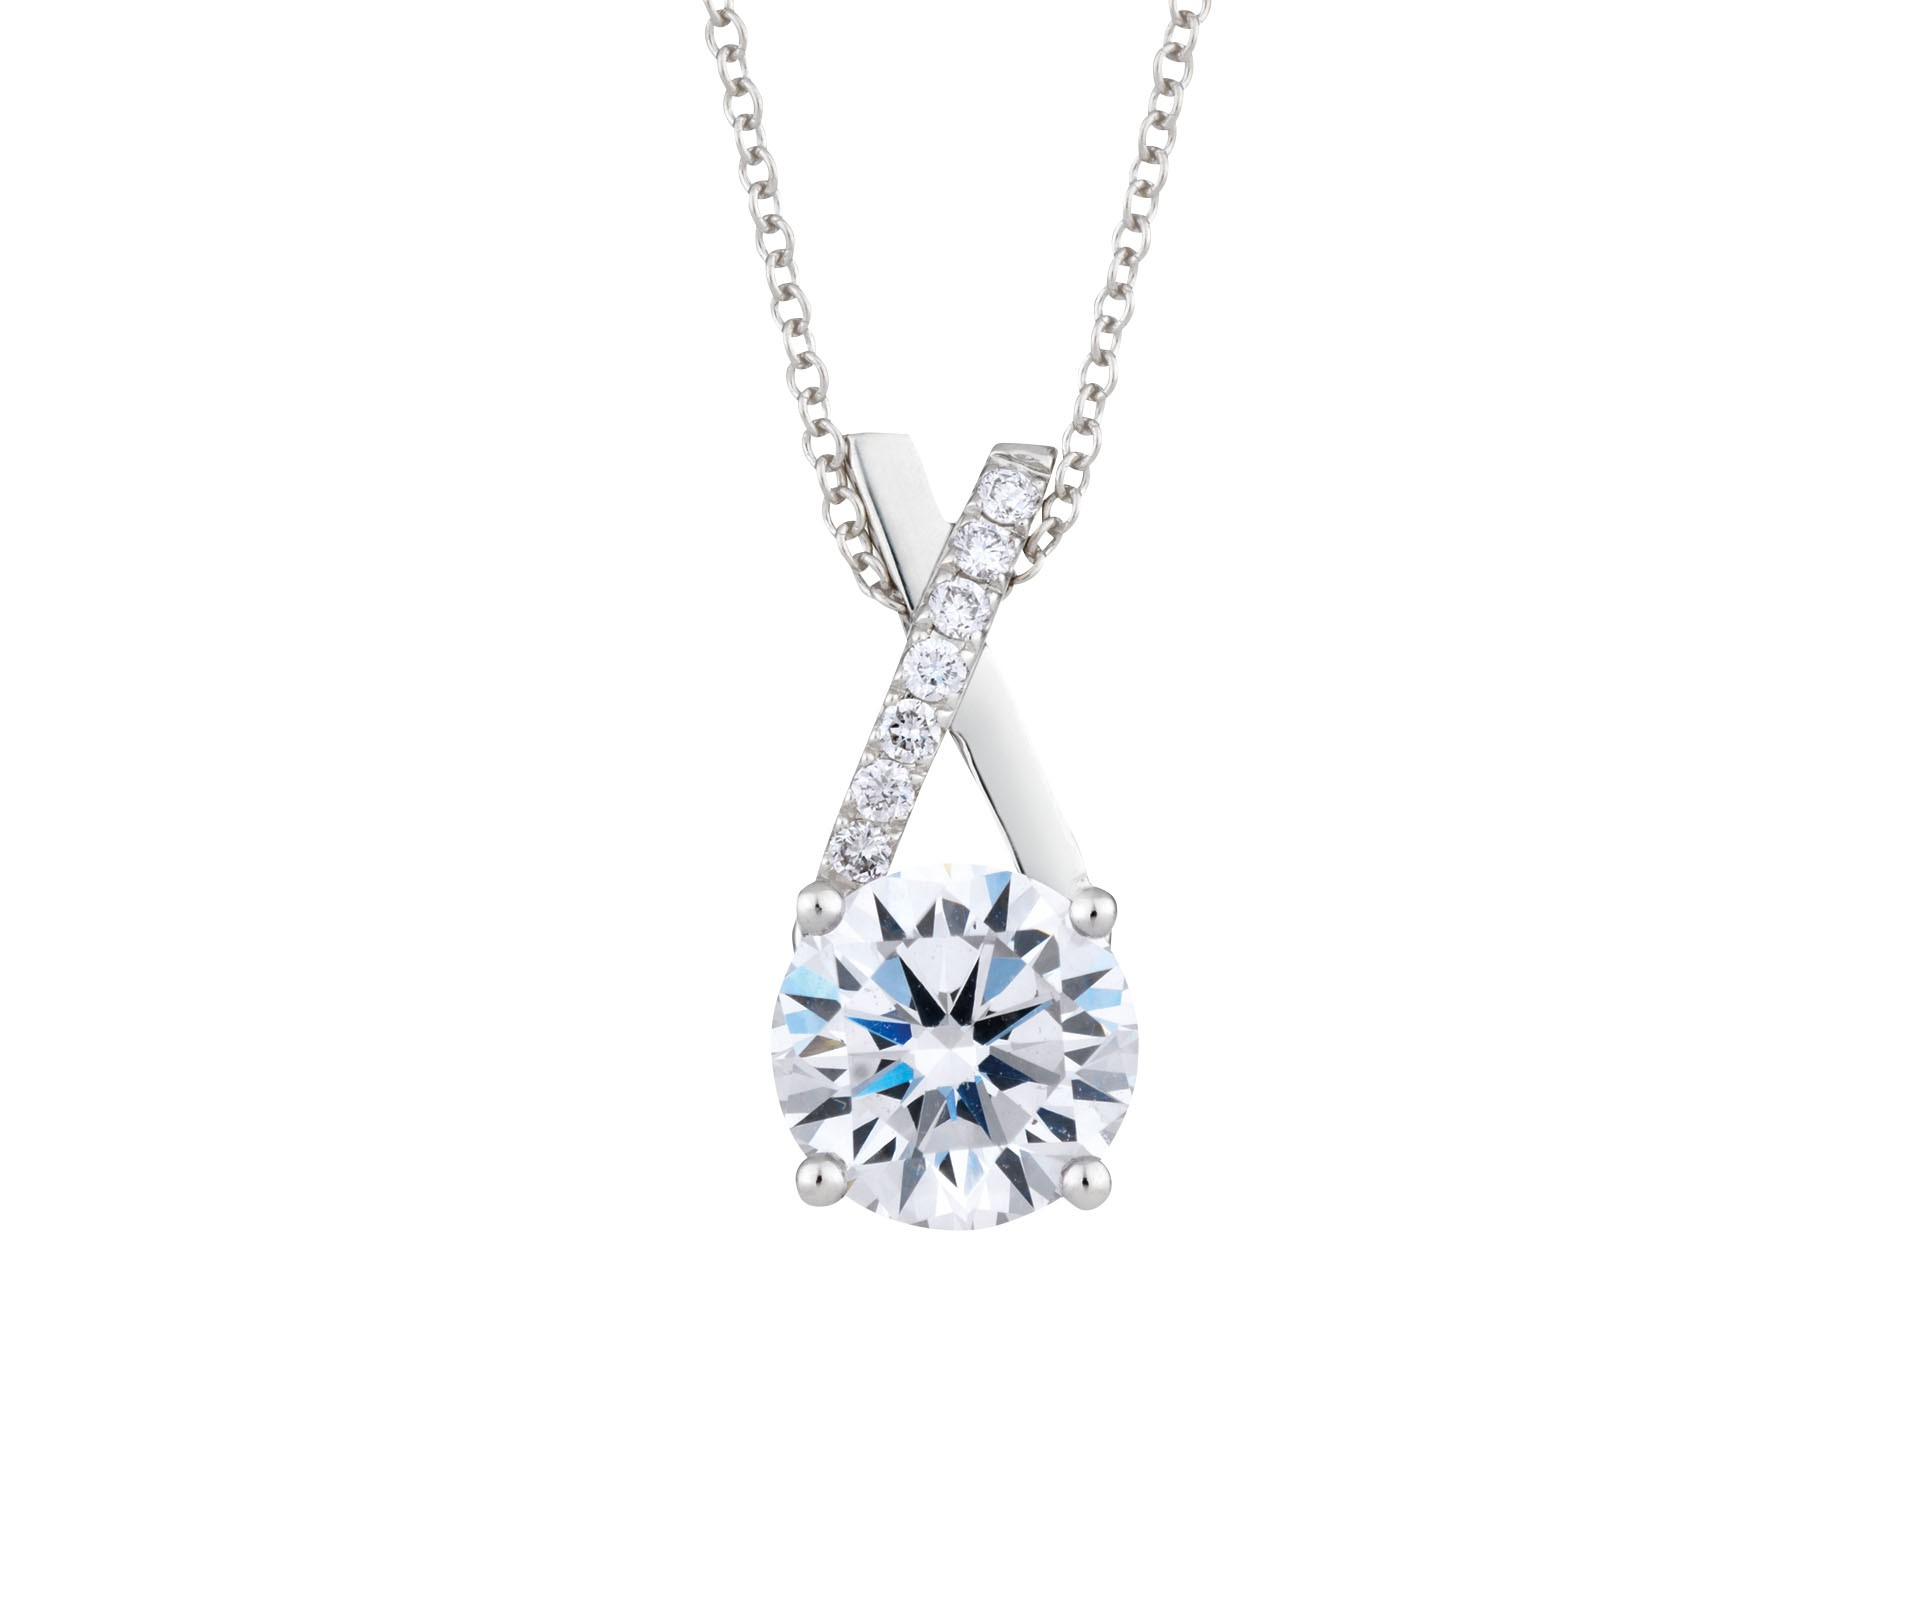 Diamond solitaire necklaces jewelry design gallery diamond solitaire necklace aloadofball Images